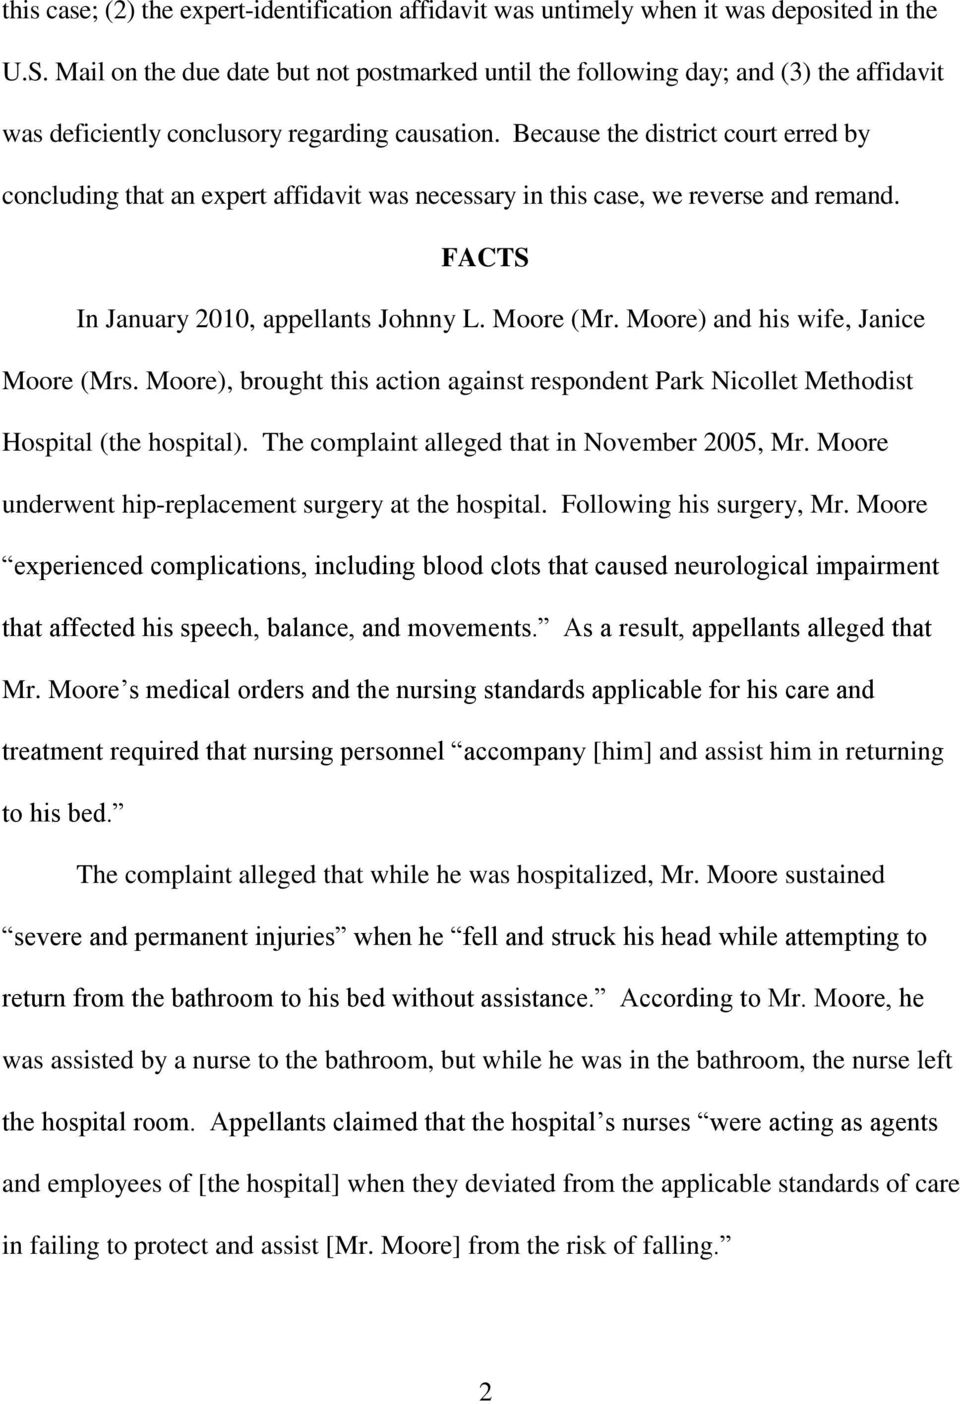 Because the district court erred by concluding that an expert affidavit was necessary in this case, we reverse and remand. FACTS In January 2010, appellants Johnny L. Moore (Mr.